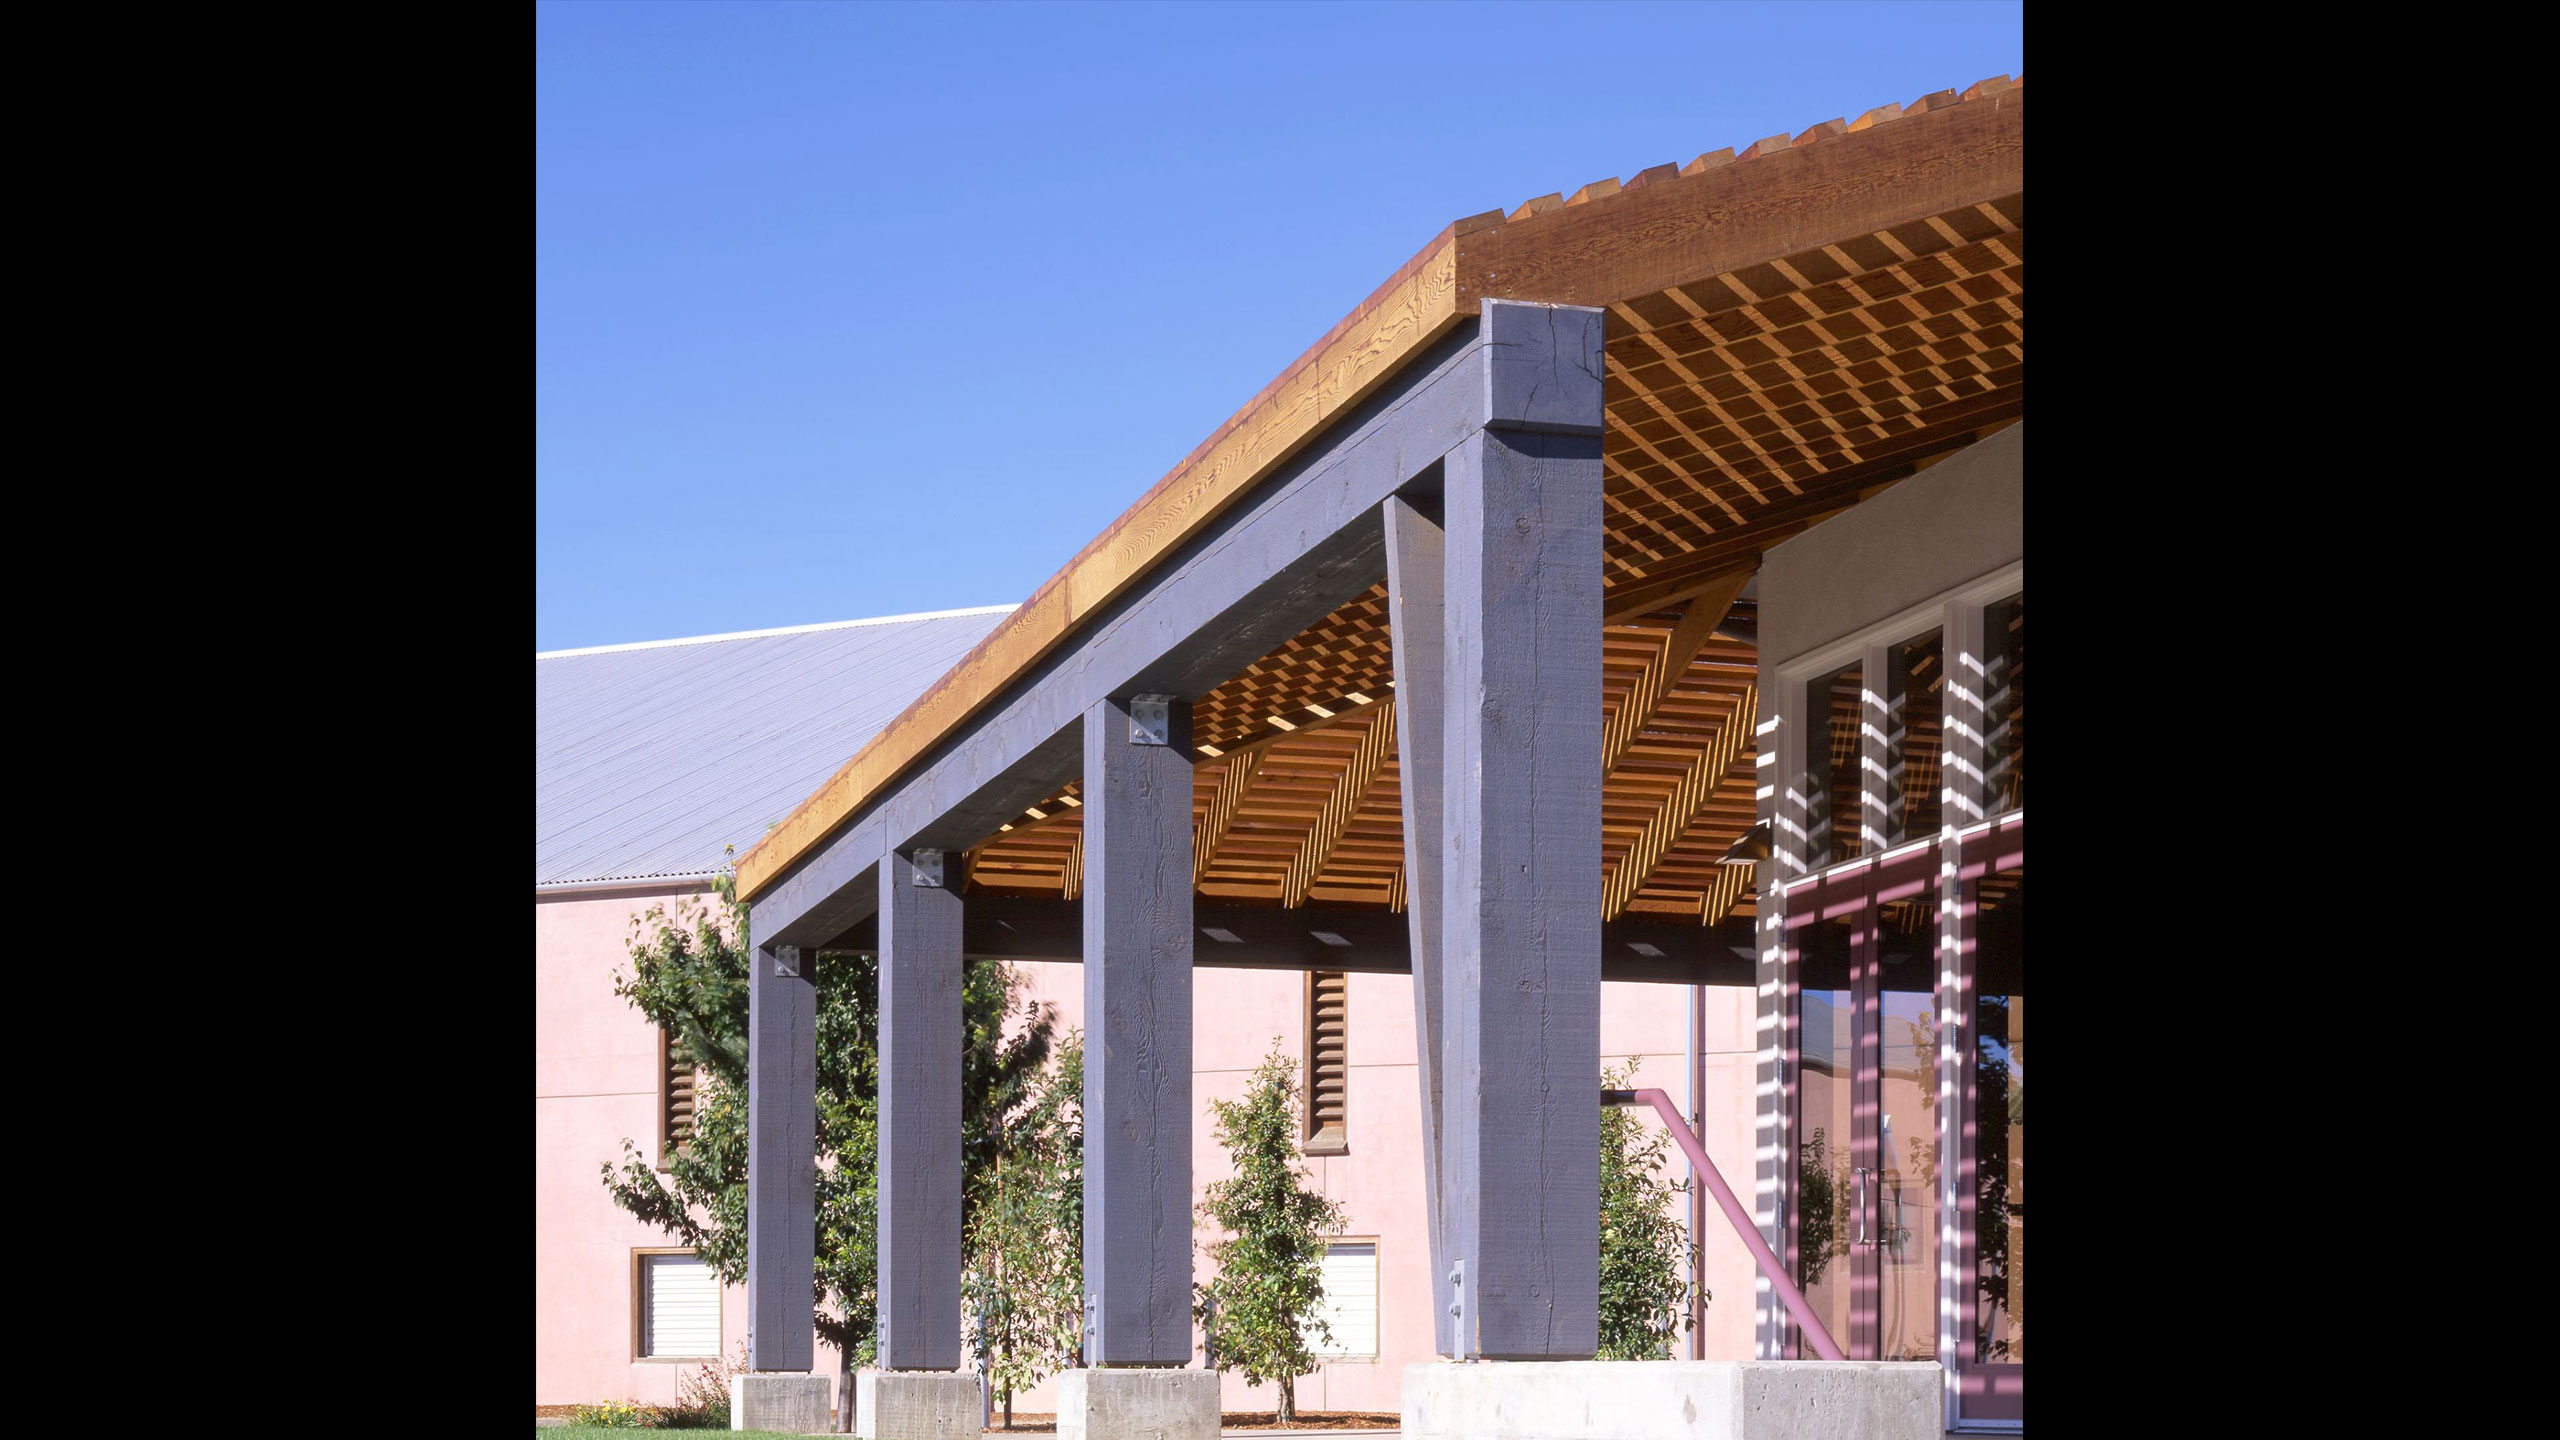 Winery-Architecture-Geyserville-Clos-du-Bois-roof-extension